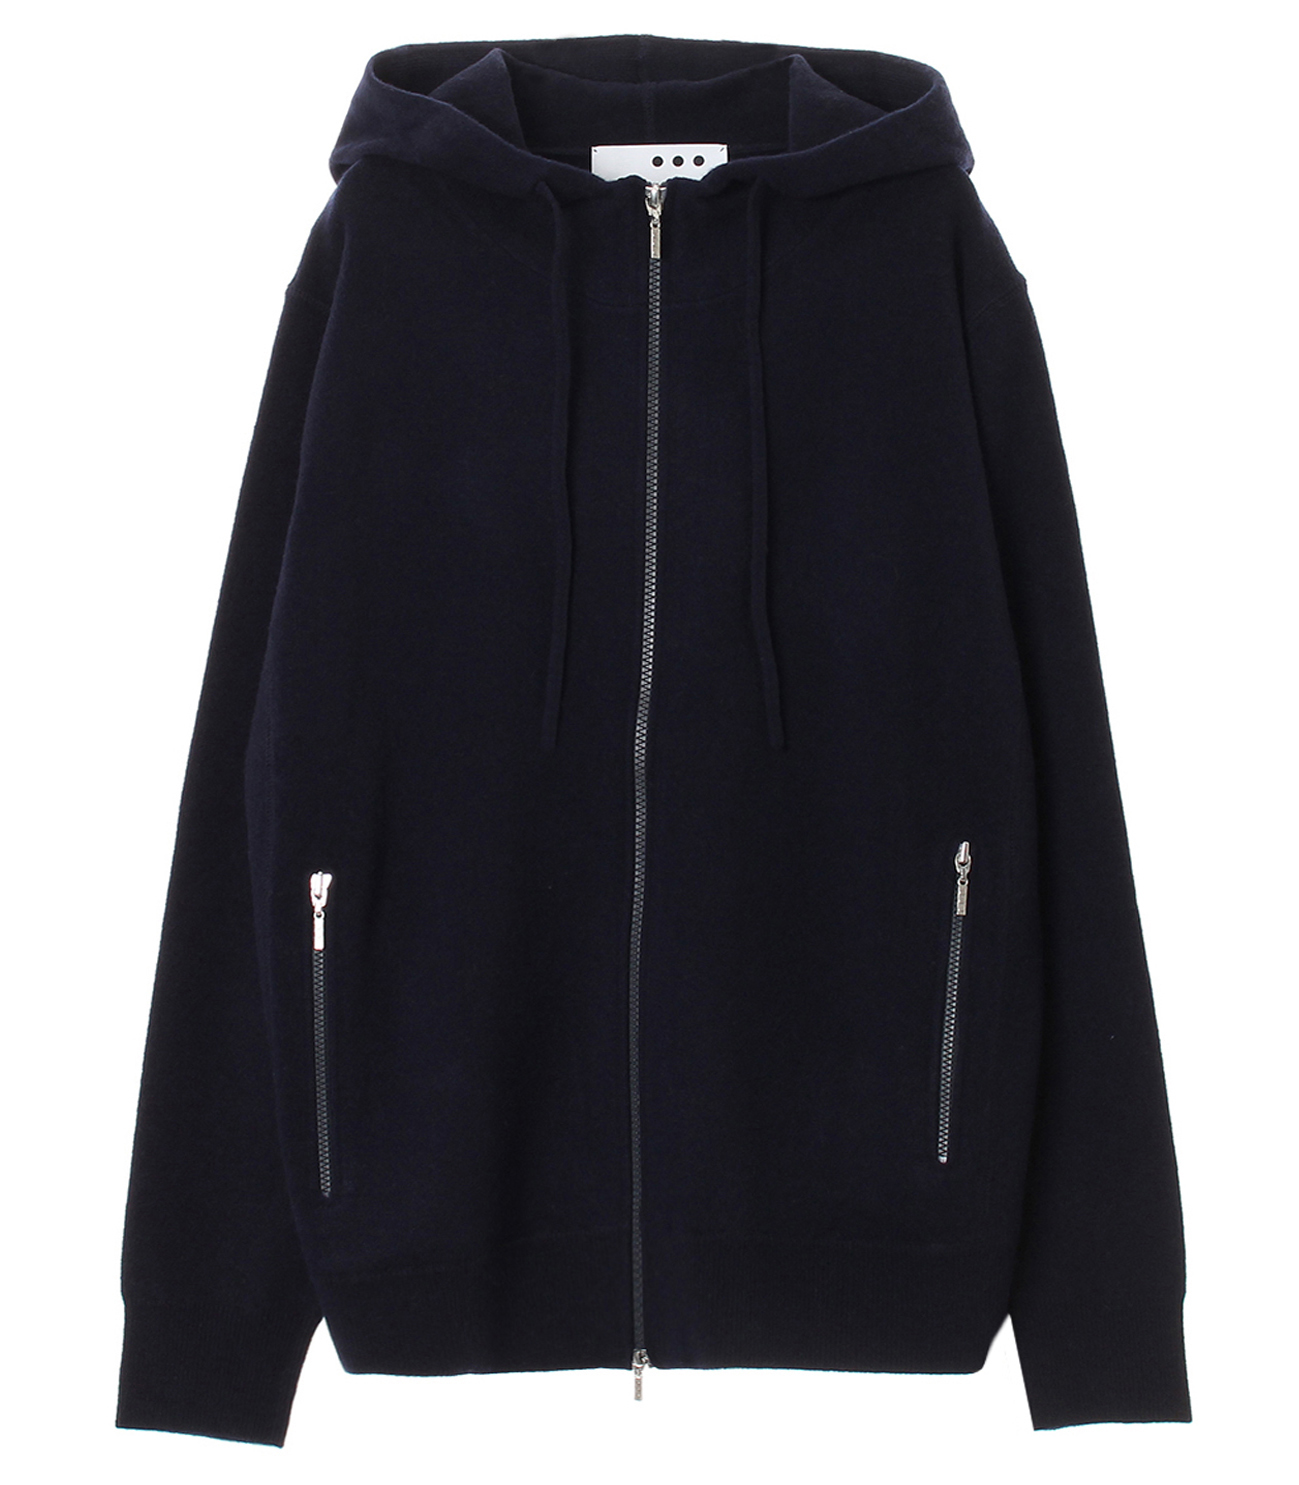 Men's tasmania wool zip parka 詳細画像 navy 1